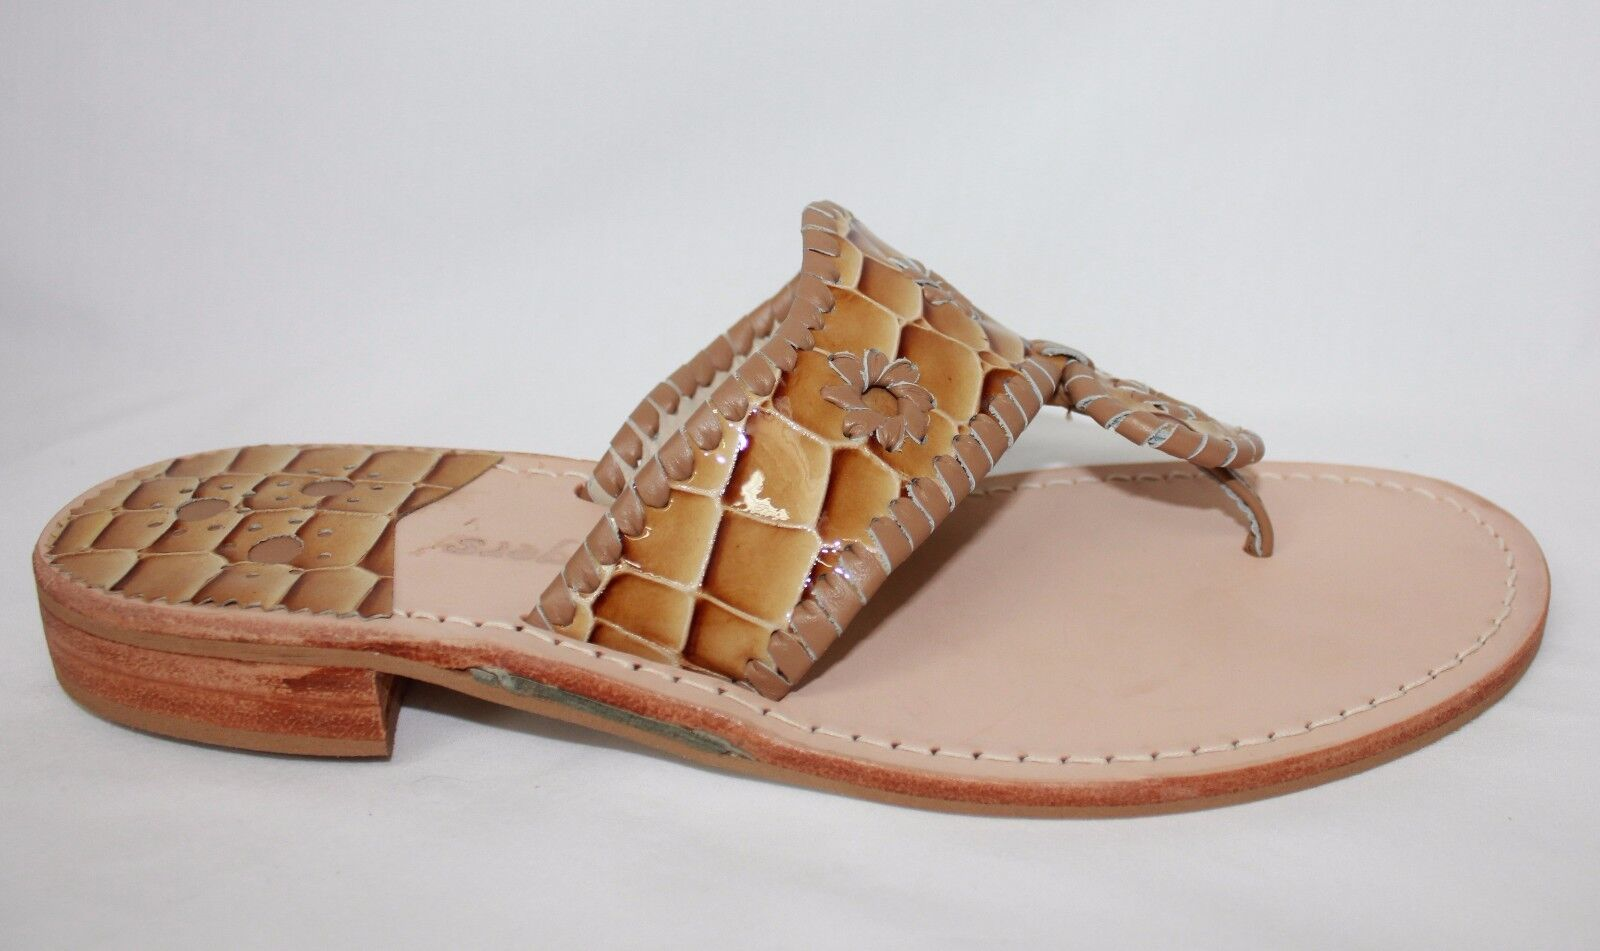 Jack Rogers Newport Croc Navajo donna Sandals Cognac Patent Leather Leather Leather New With Box 5f9b87